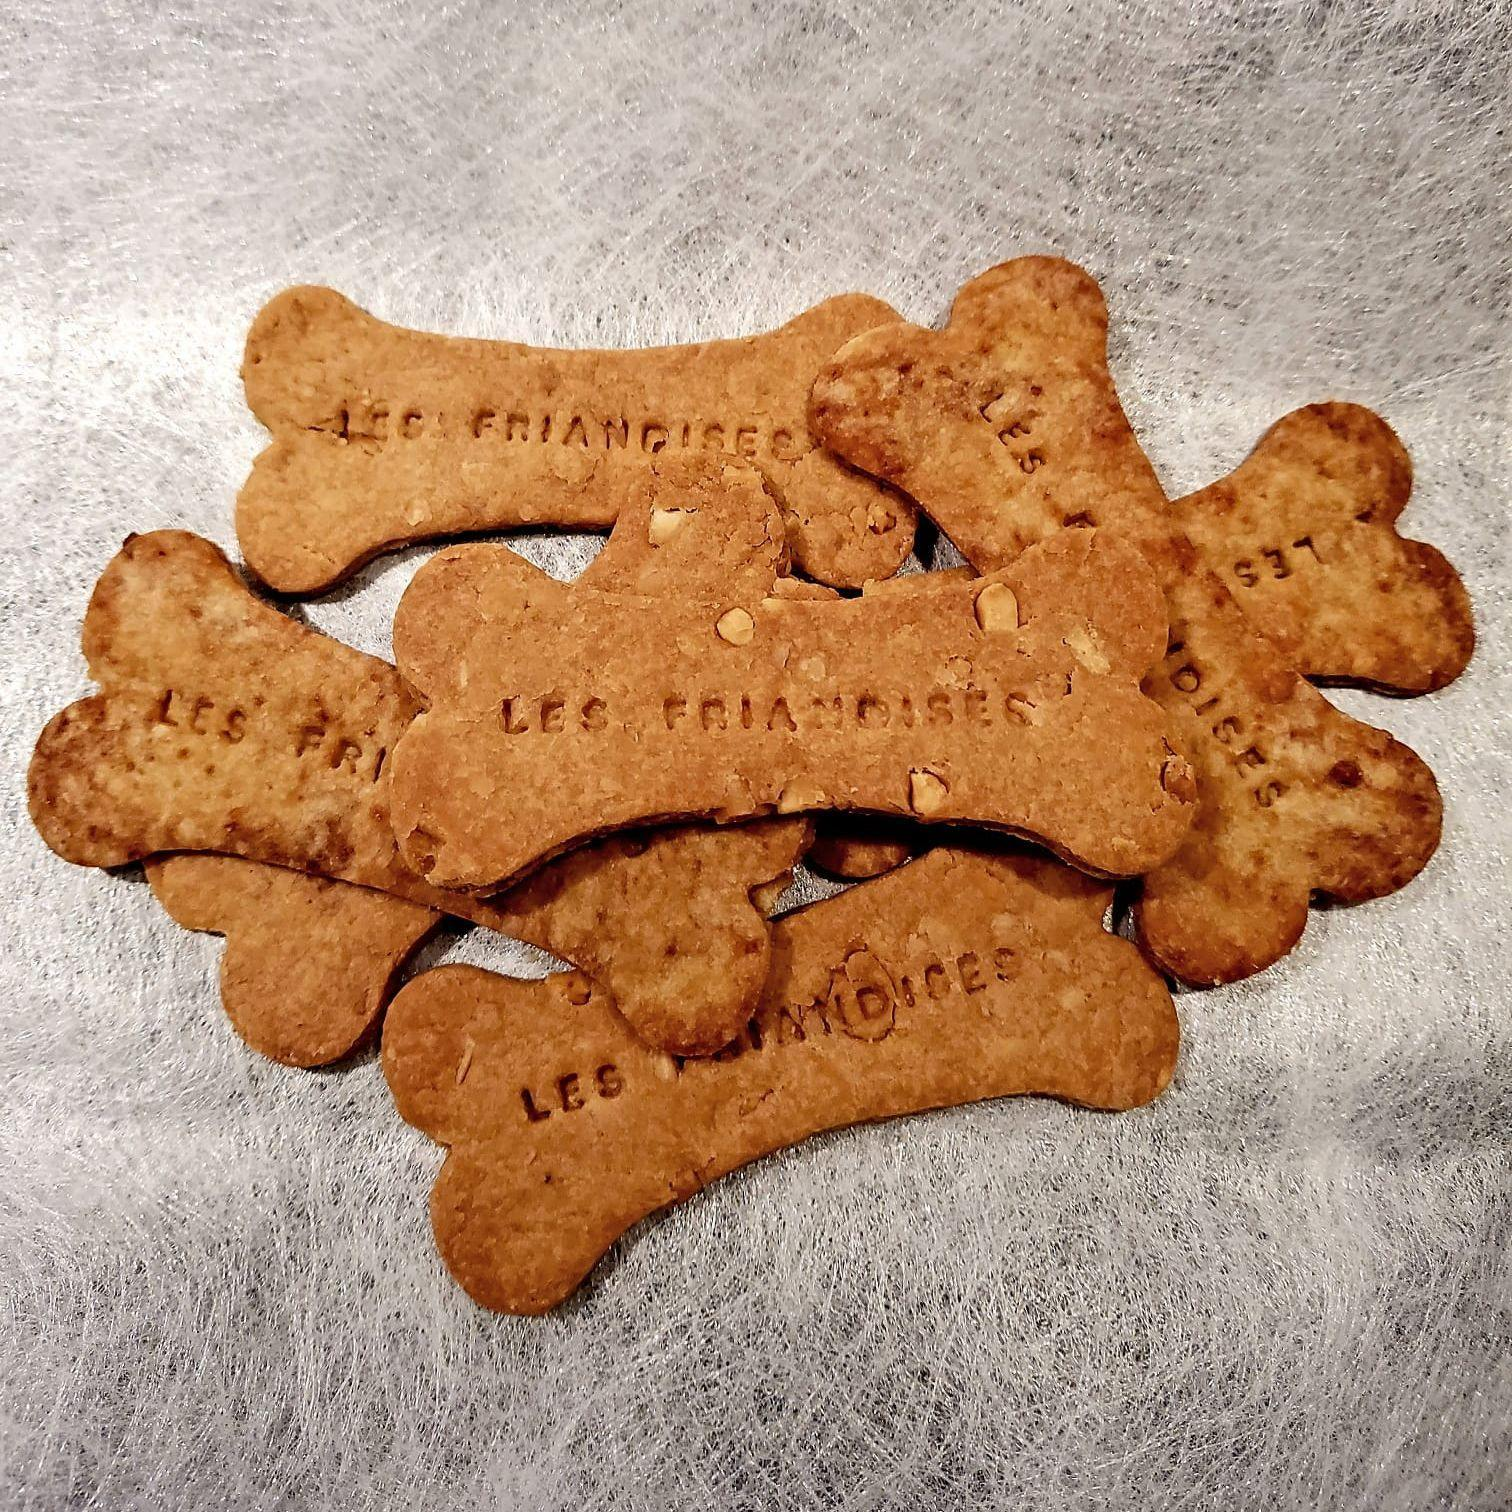 Peanut butter treats - Les friandises